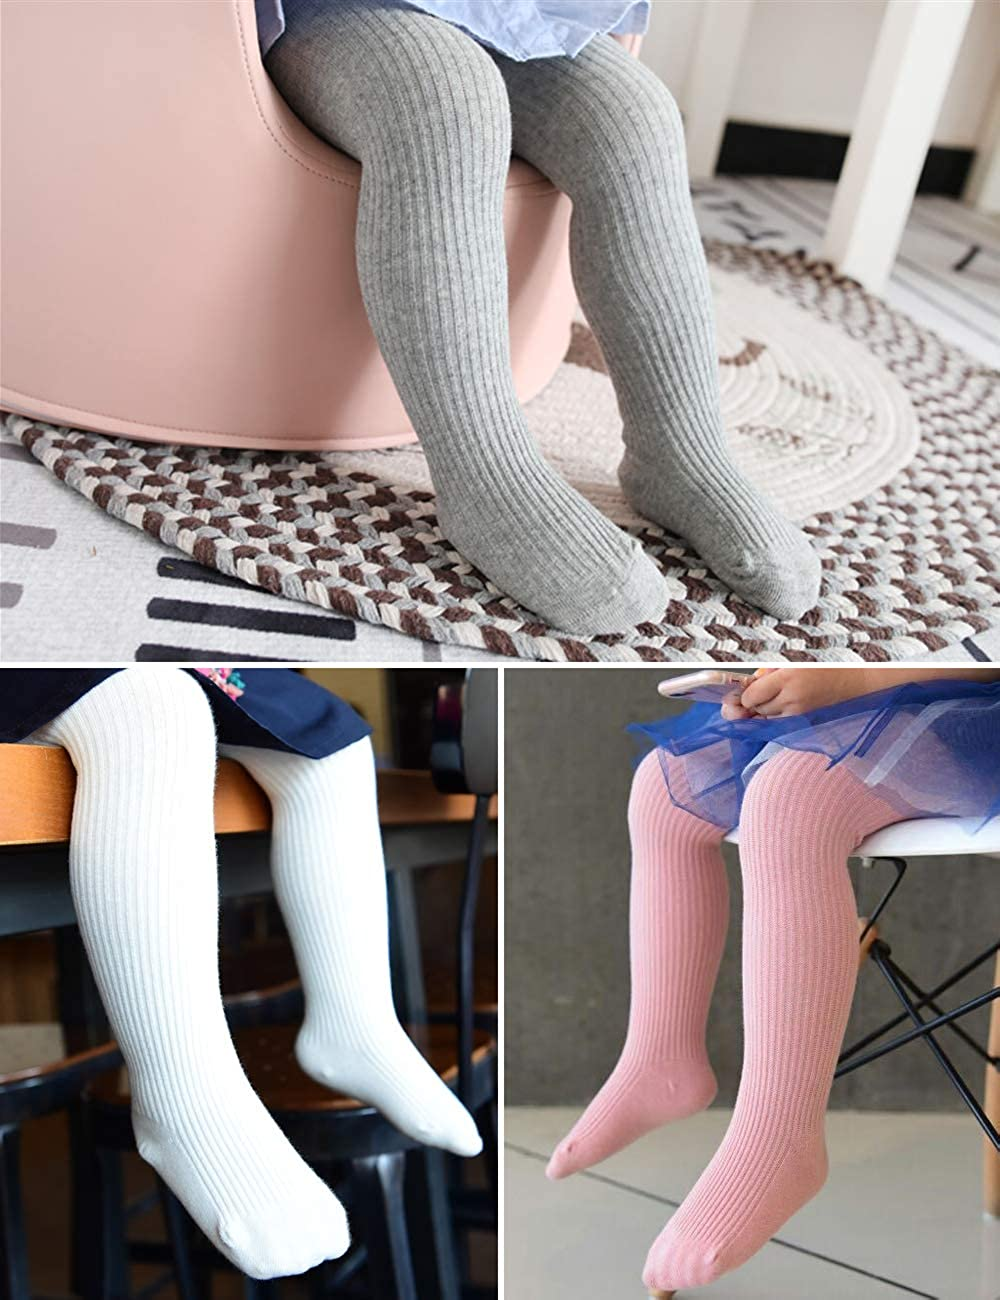 Cute Cotton Tights for Baby Girls Cable Knit Leggings Toddlers Boys Pantyhose Child Pants Stockings of Arctic Penguin 3 Pack